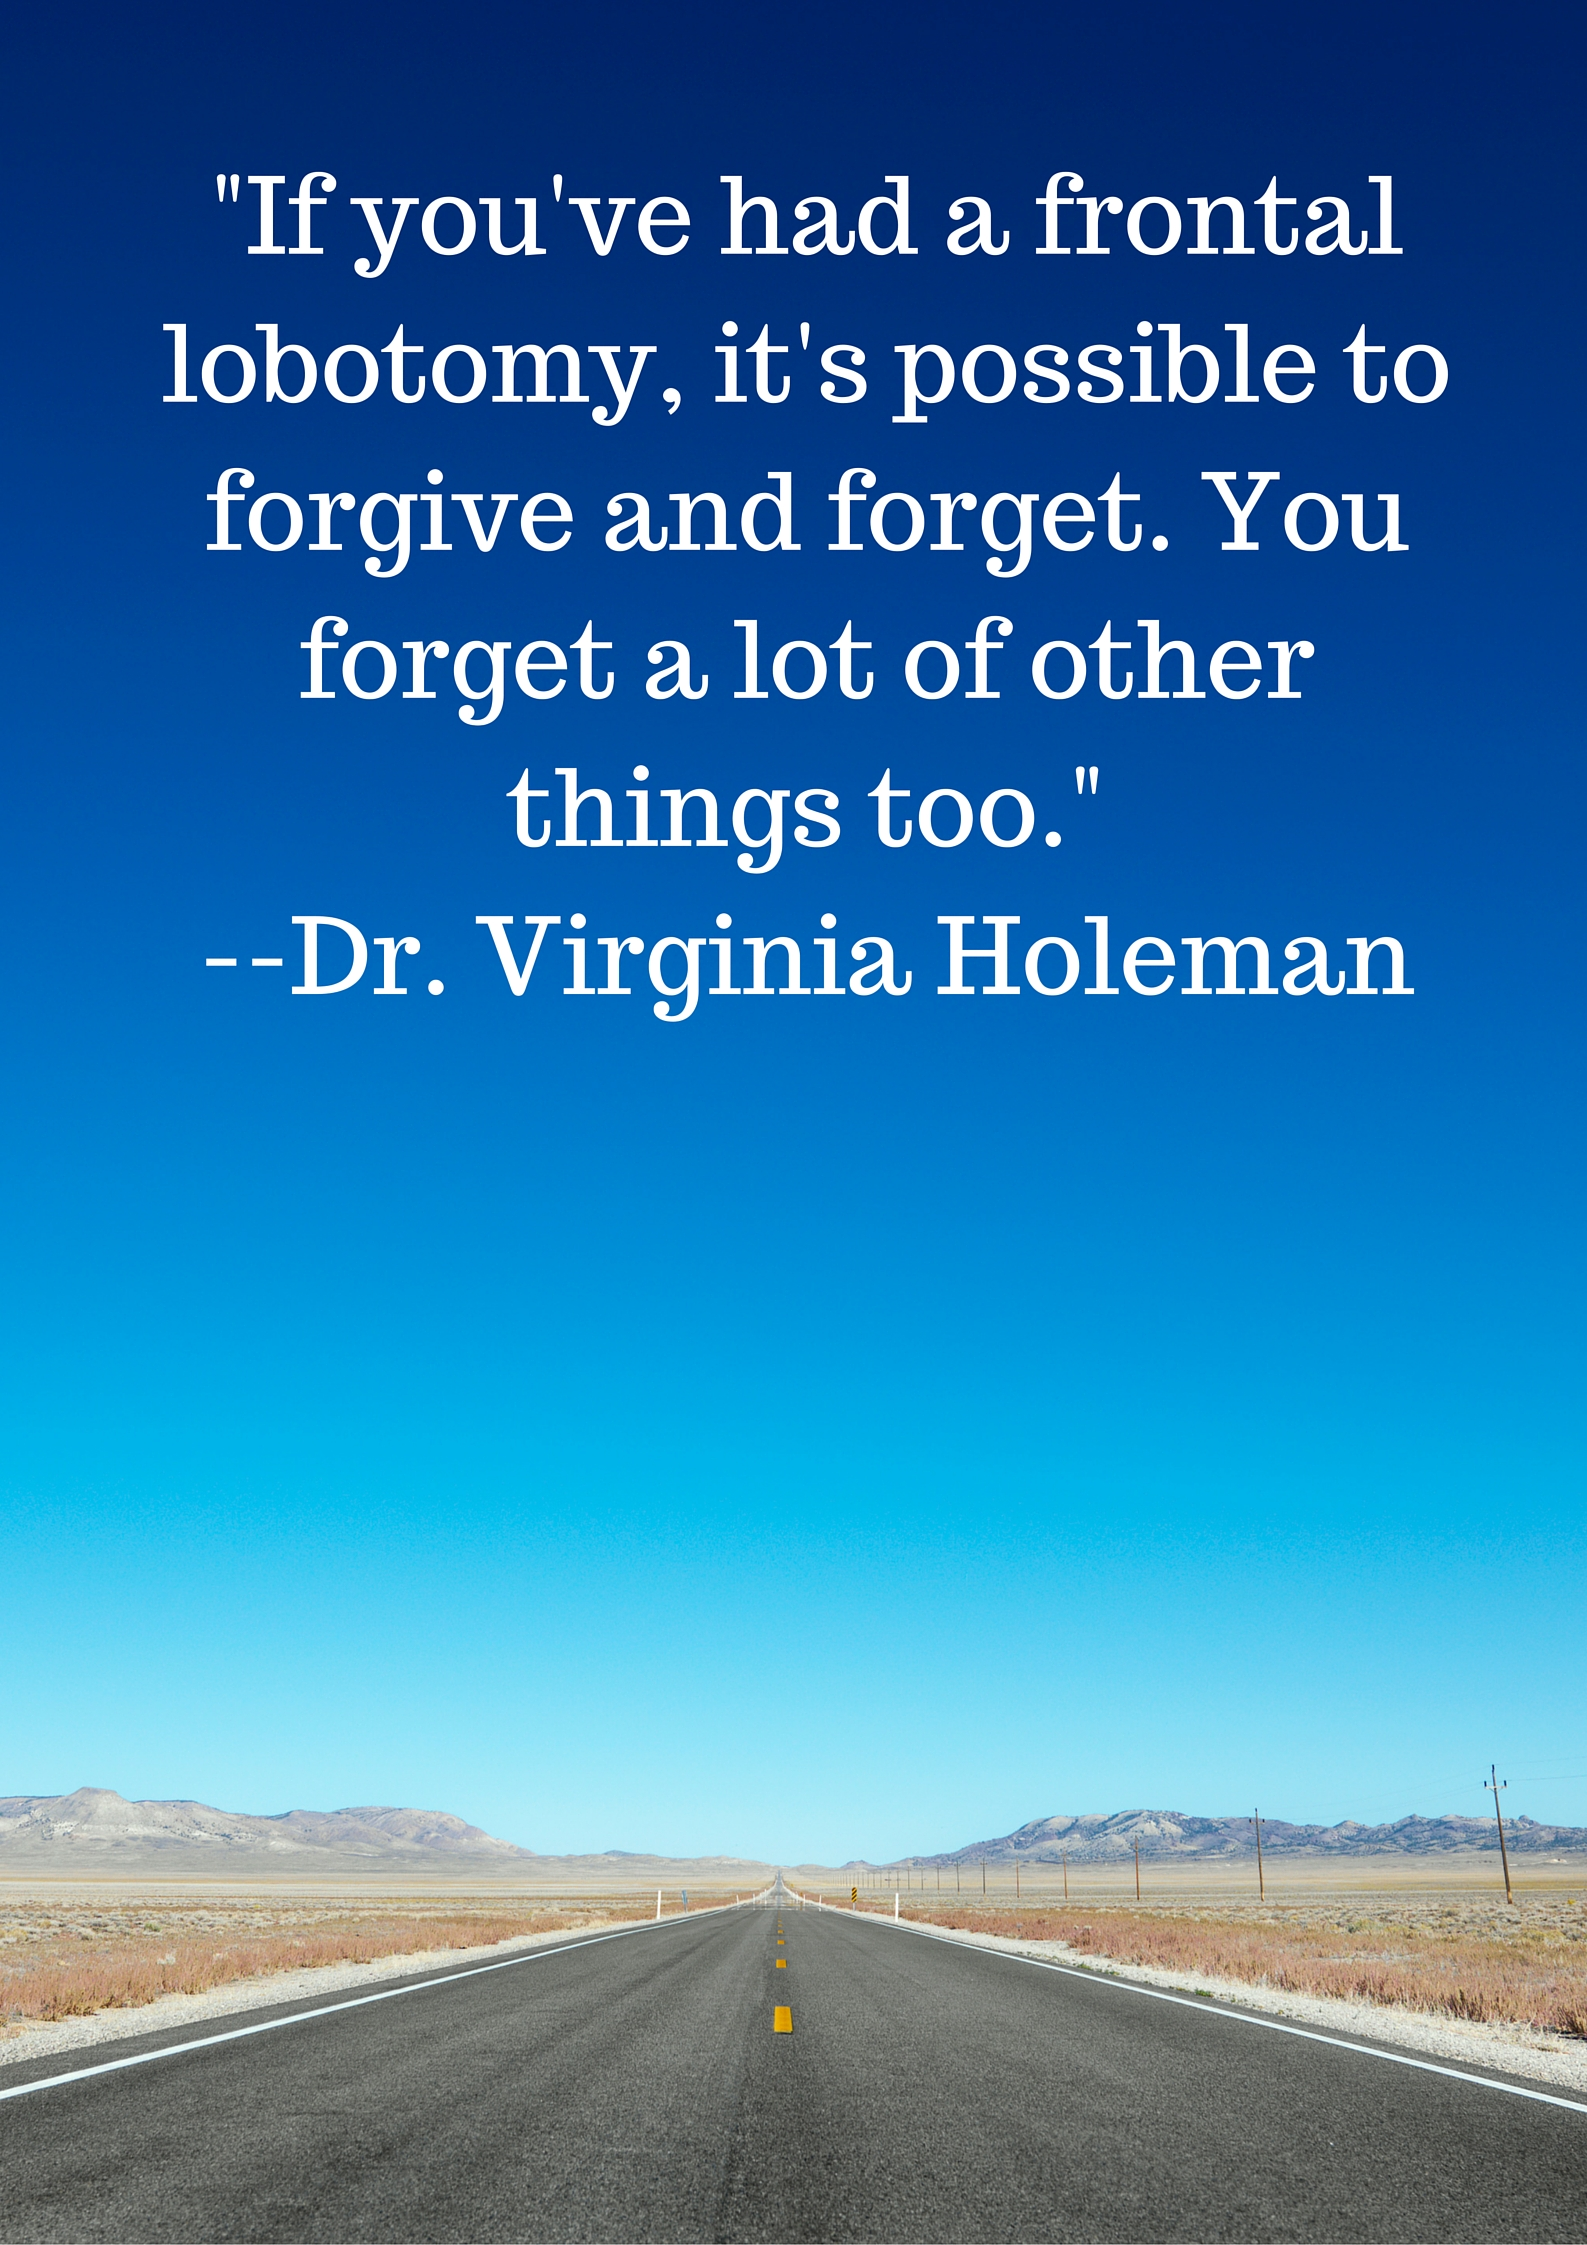 The first line spoken in the first class we ever launched--If you've had a frontal lobotomy, it's possible to forgive and forget. You forget a lot of other things too.--Dr. Virginia Holeman (2)